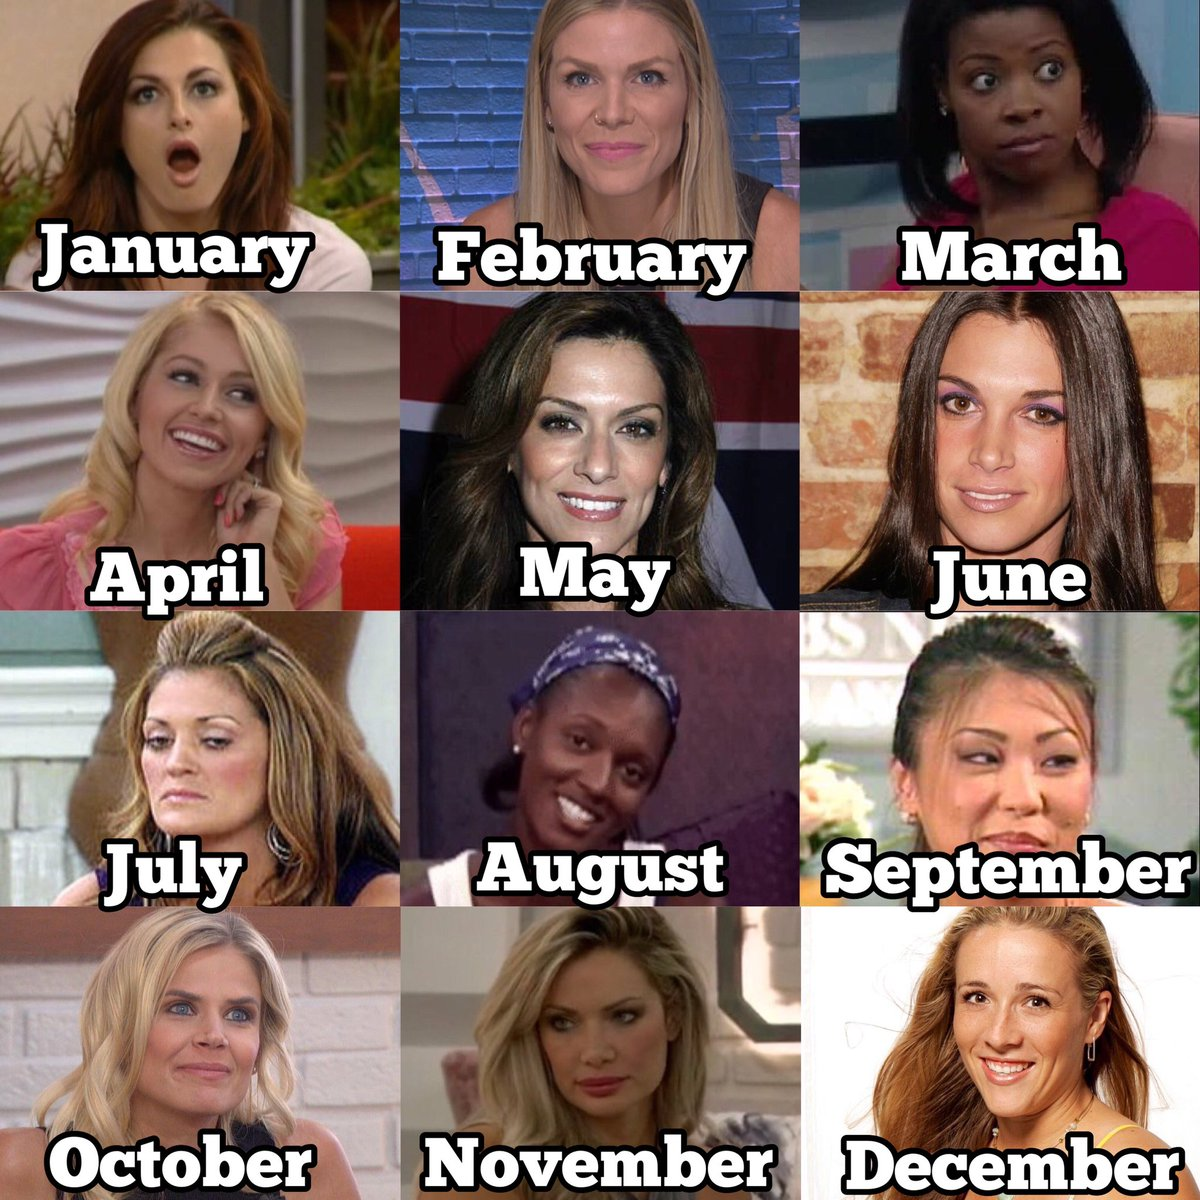 The month and day you were born is the girls you're in an alliance with. Who did you get? #BB22 https://t.co/6A9Uku5Wyj